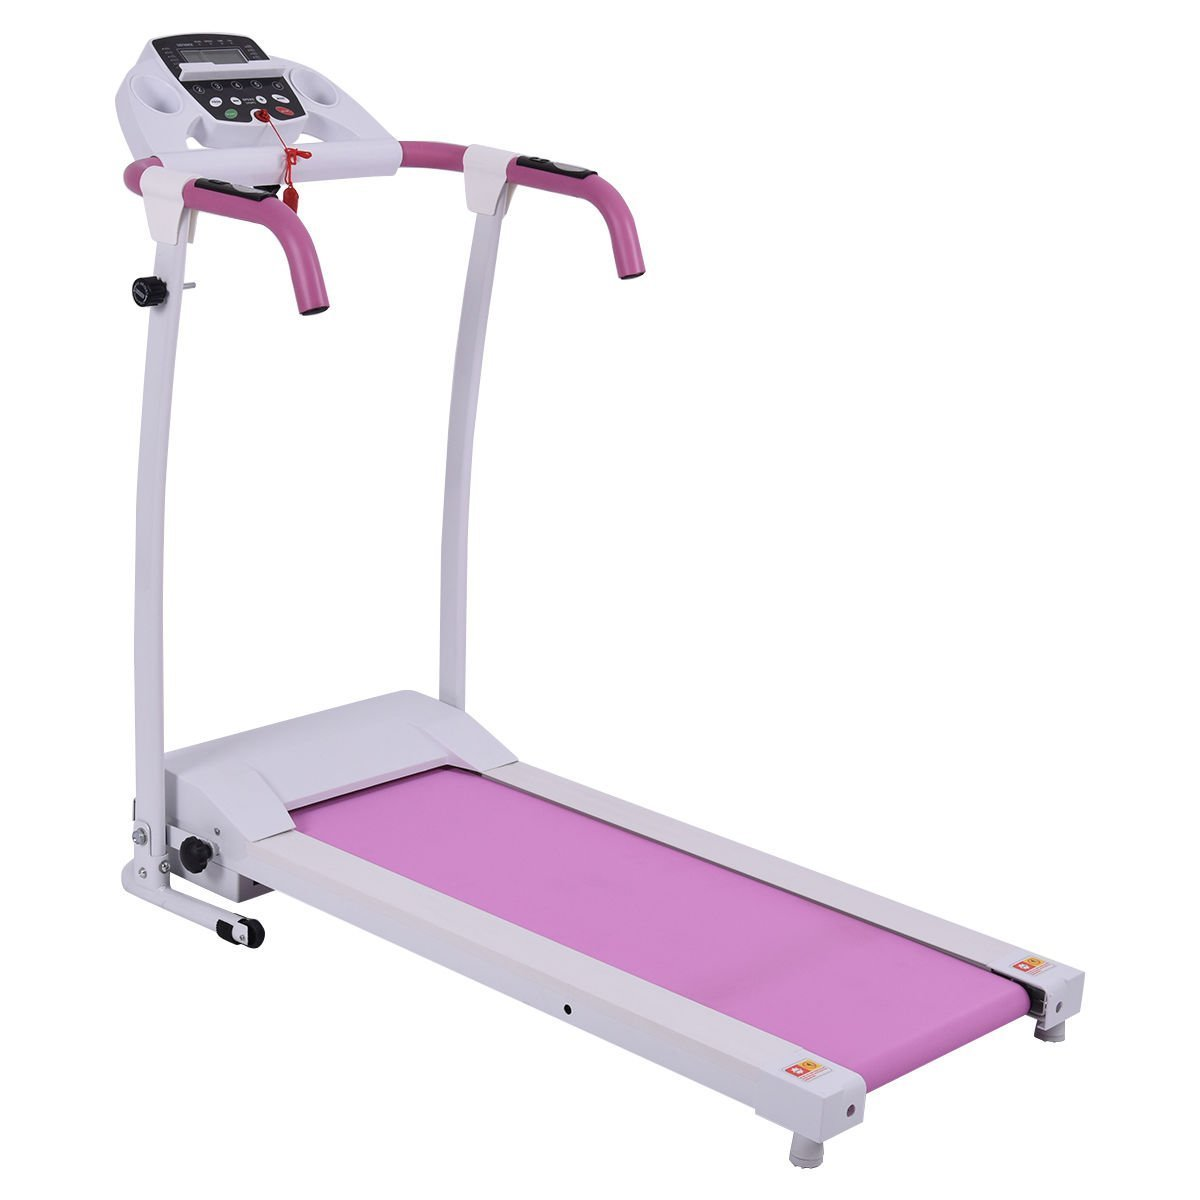 GYMAX Folding Exercise Treadmill Fitness Electric Treadmill Electric Motorized Power Fitness Running Machine 800W W/IPAD Mobile Phone Holder (Pink) by GYMAX (Image #8)